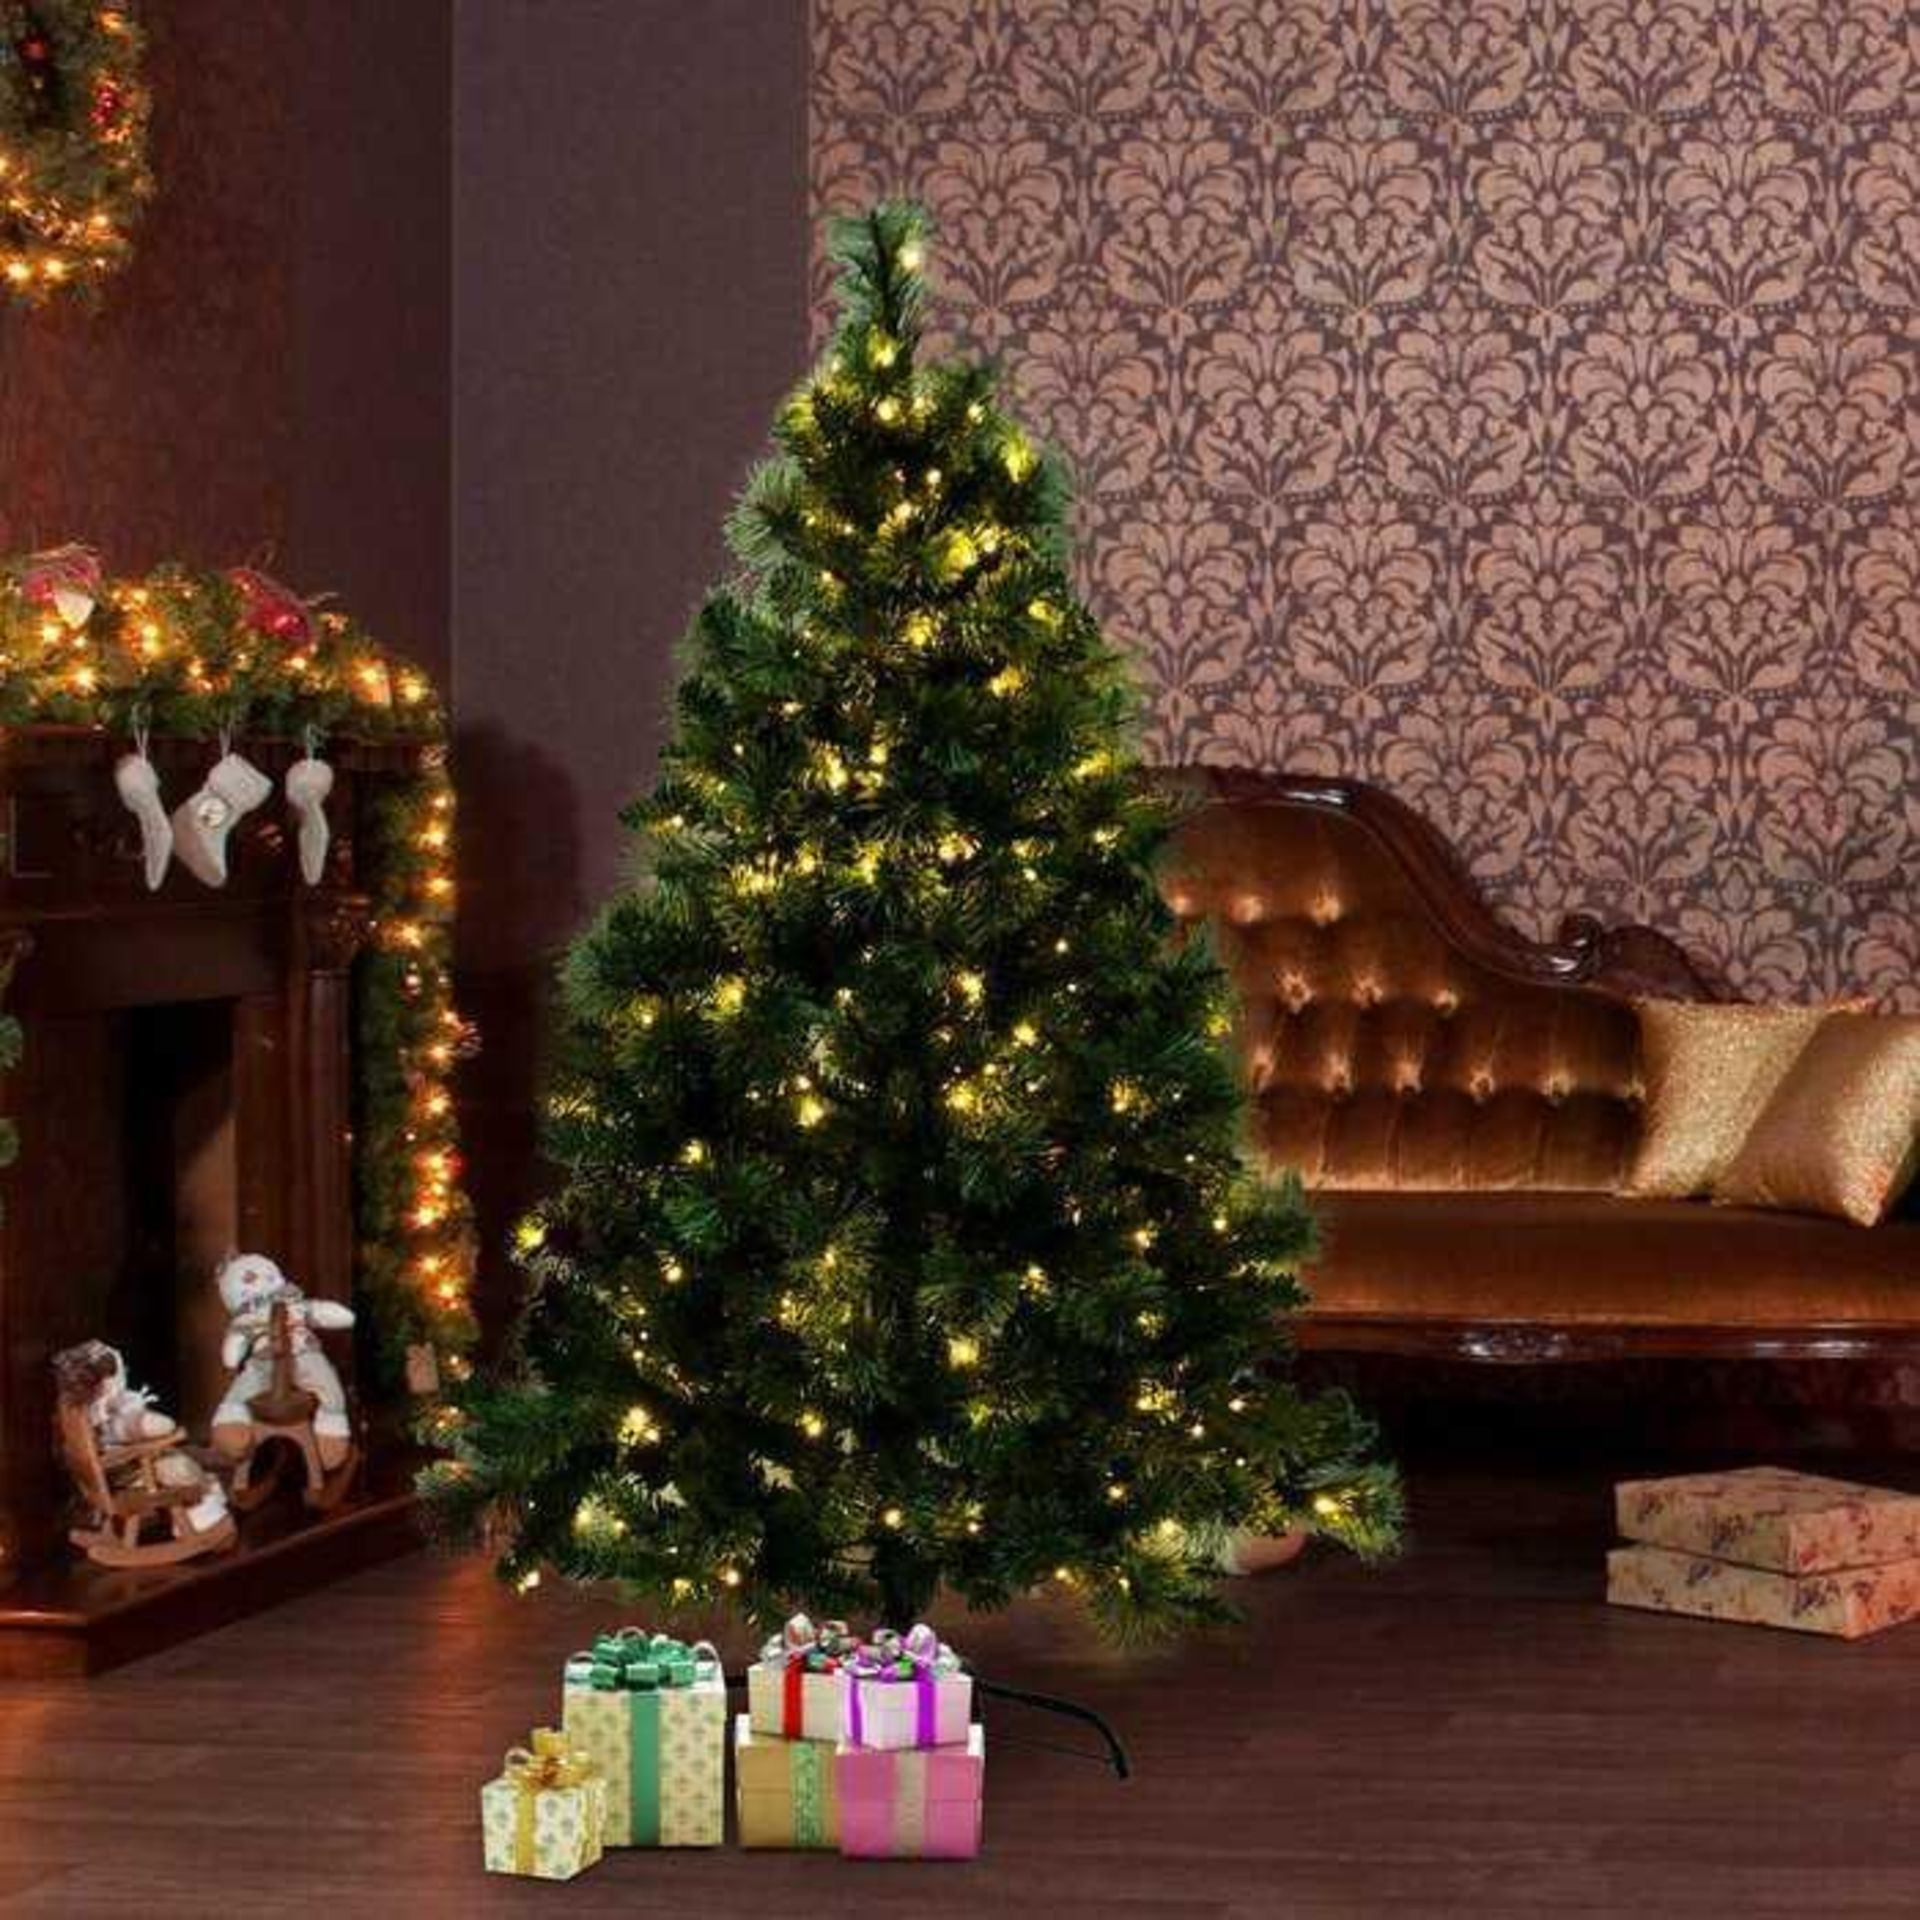 RRP £100 Lot To Contain A 5Ft Green Spruce Artificial Christmas Tree With 100 Warm White Lights